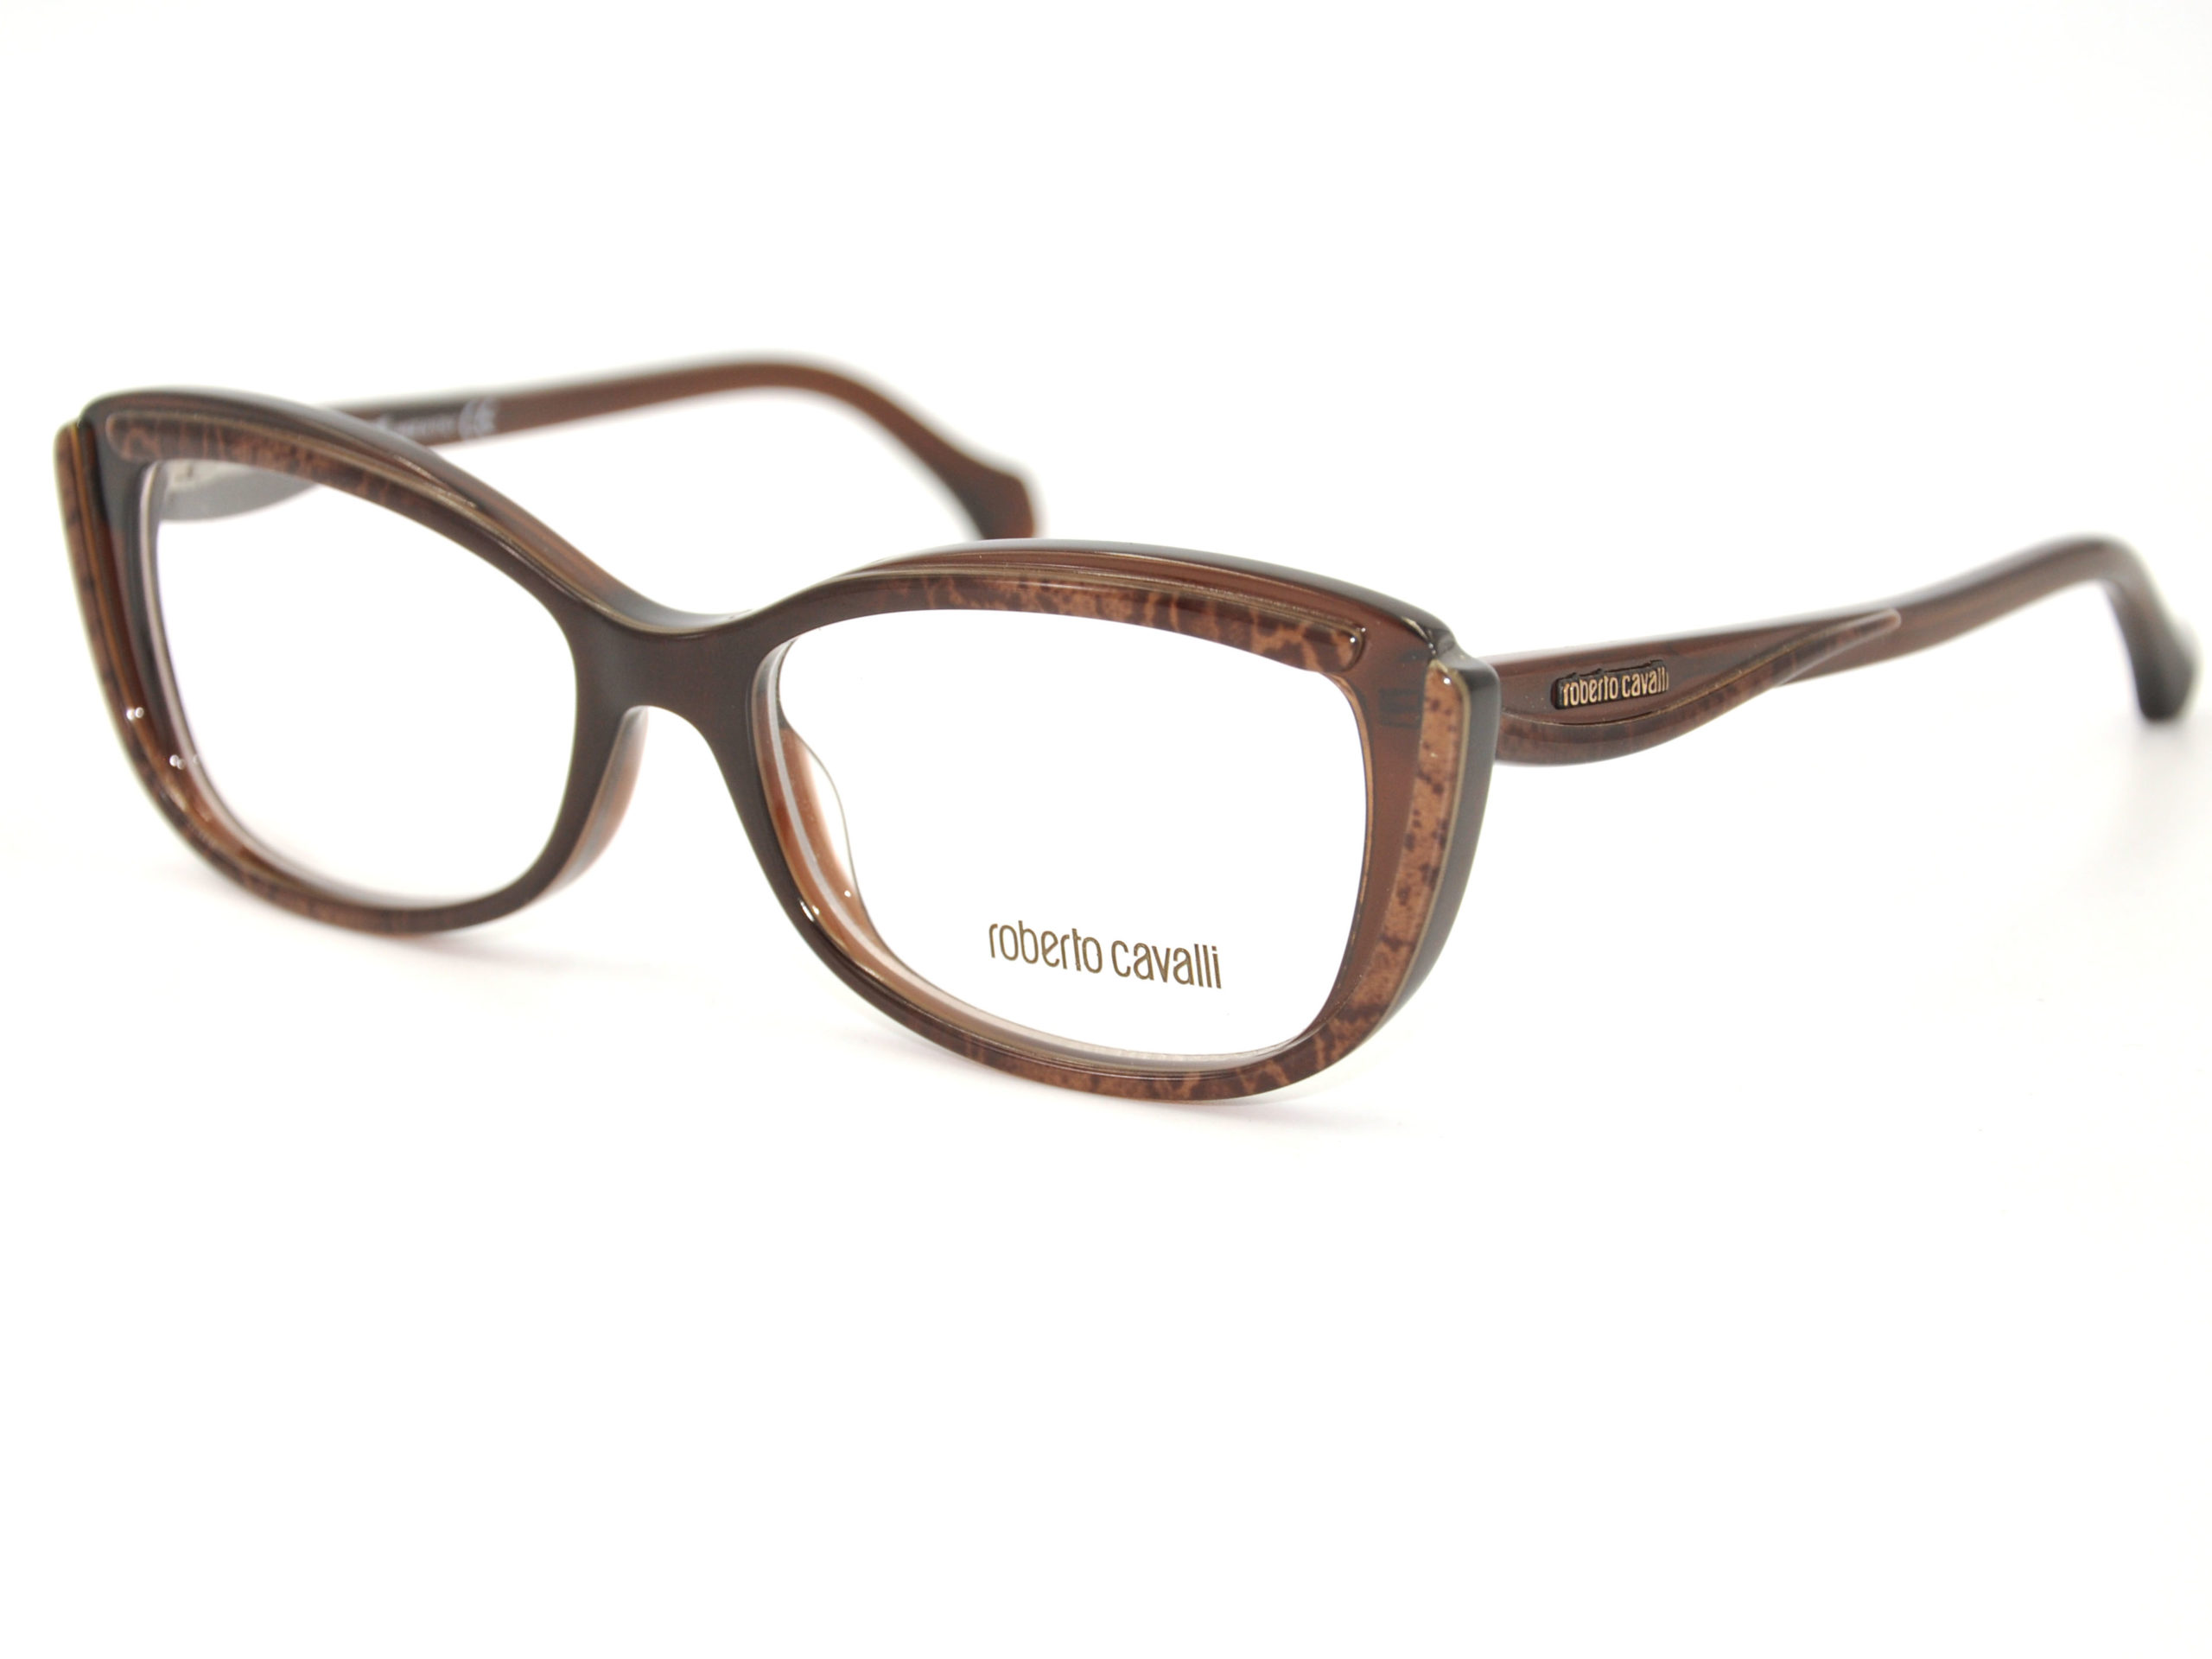 ROBERTO CAVALLI DICOMANO 5044 C050 Prescription Glasses 2018